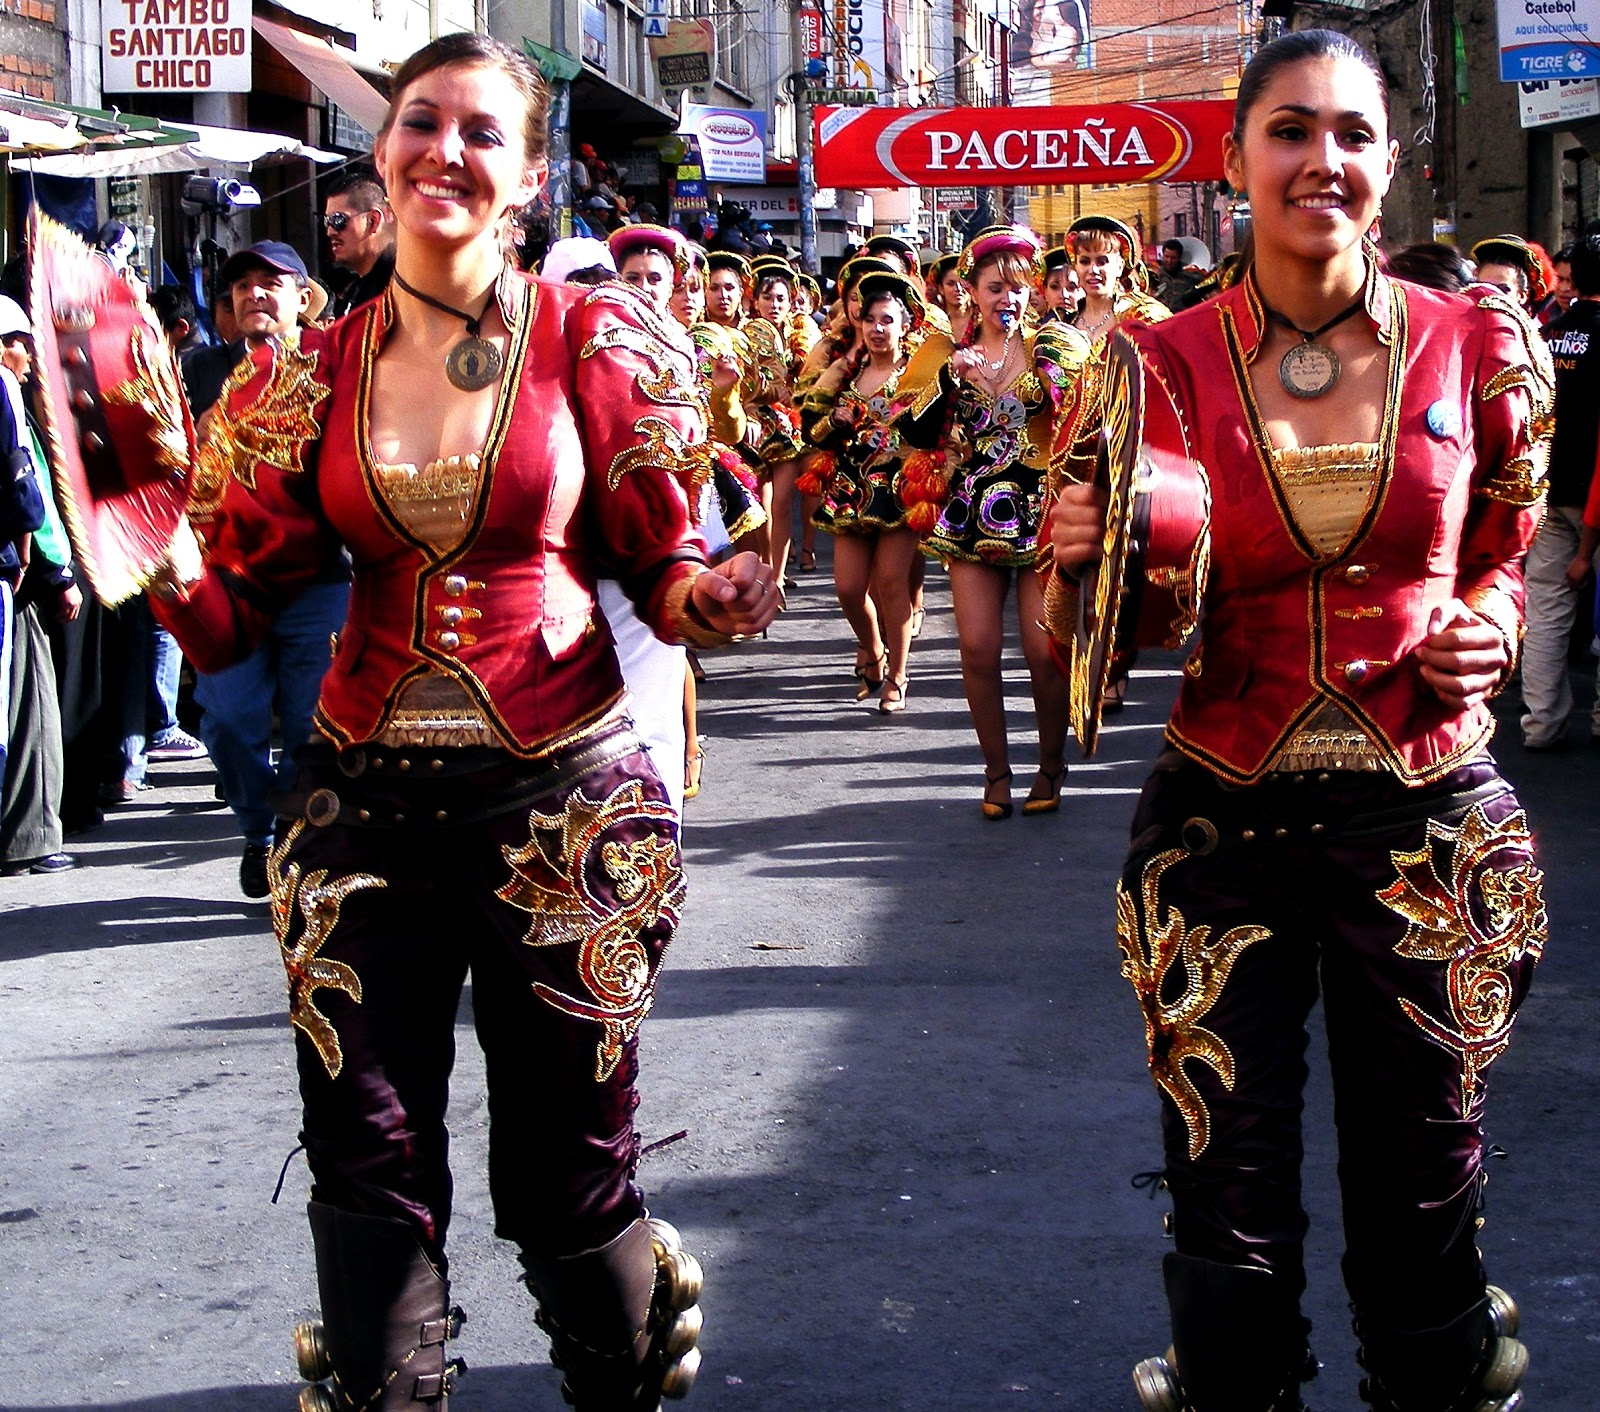 March Holidays In Bolivia: HighLives' Club: Bolivia Carnival, Oruro 2013